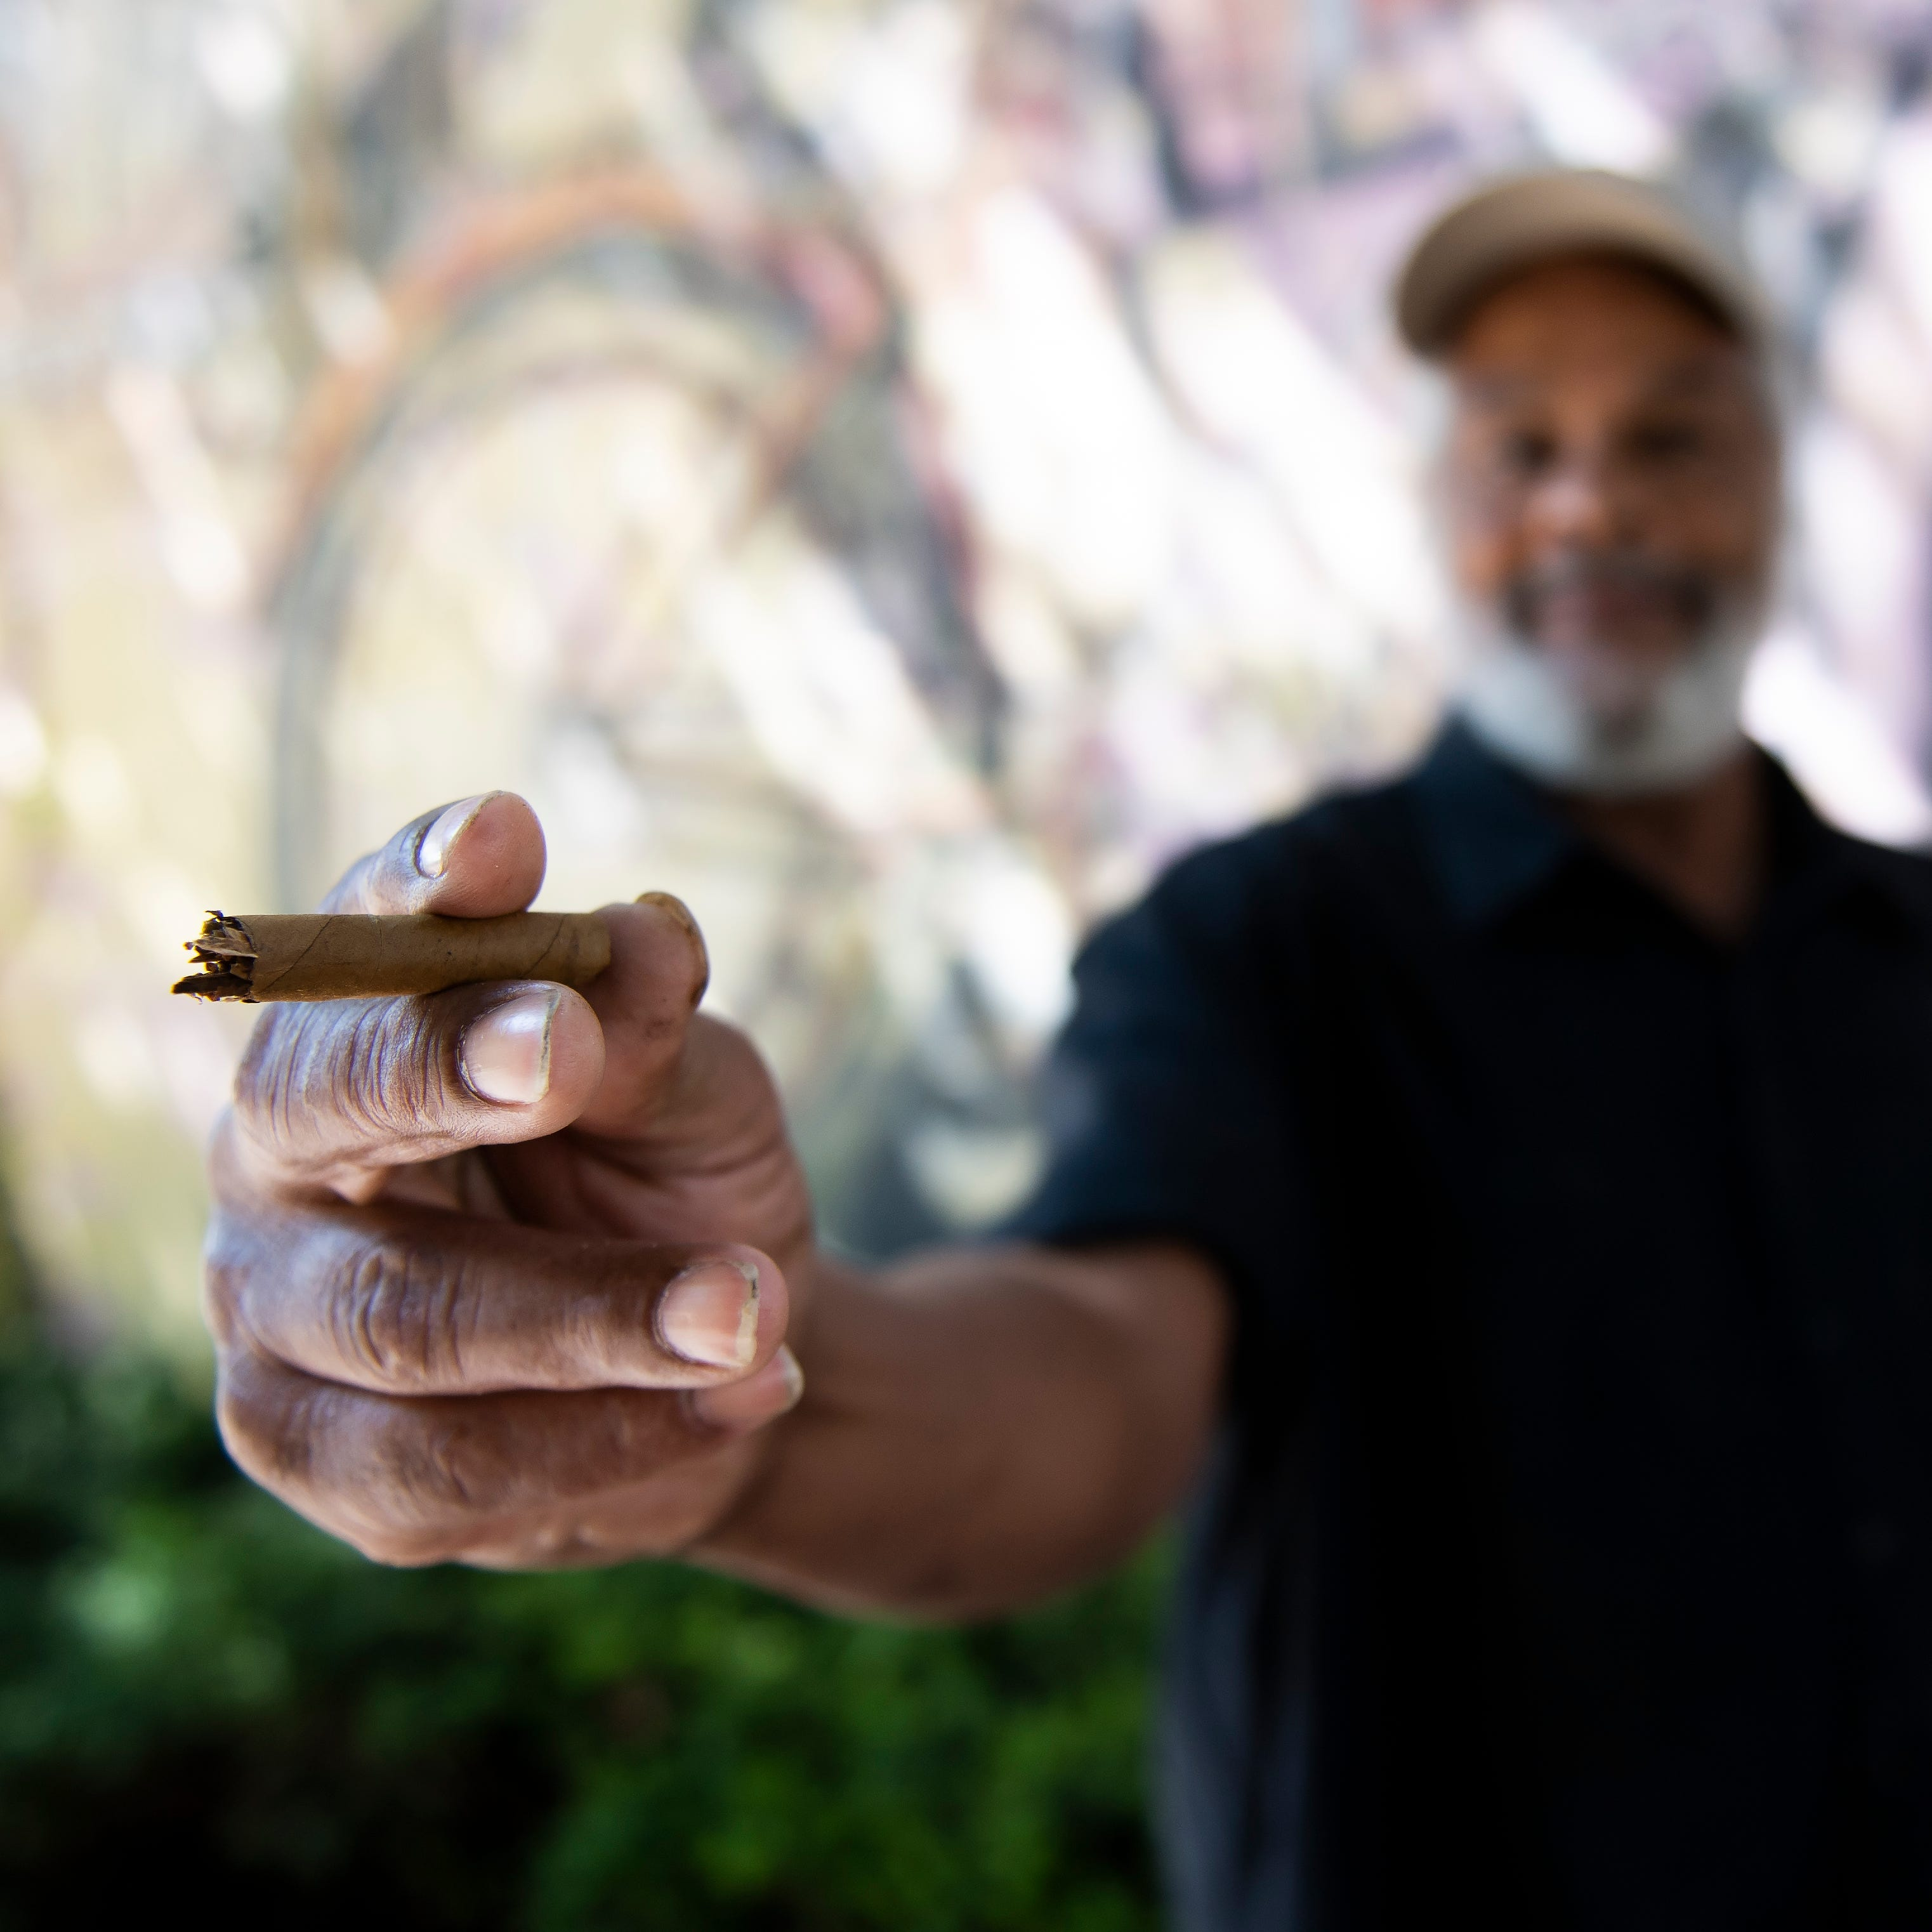 Michael Autry Sr. holds out a piece of a cigar to show how big he remembers the marijuana blunt was that was behind his ear when he was arrested in an alley off West Market Street in York.